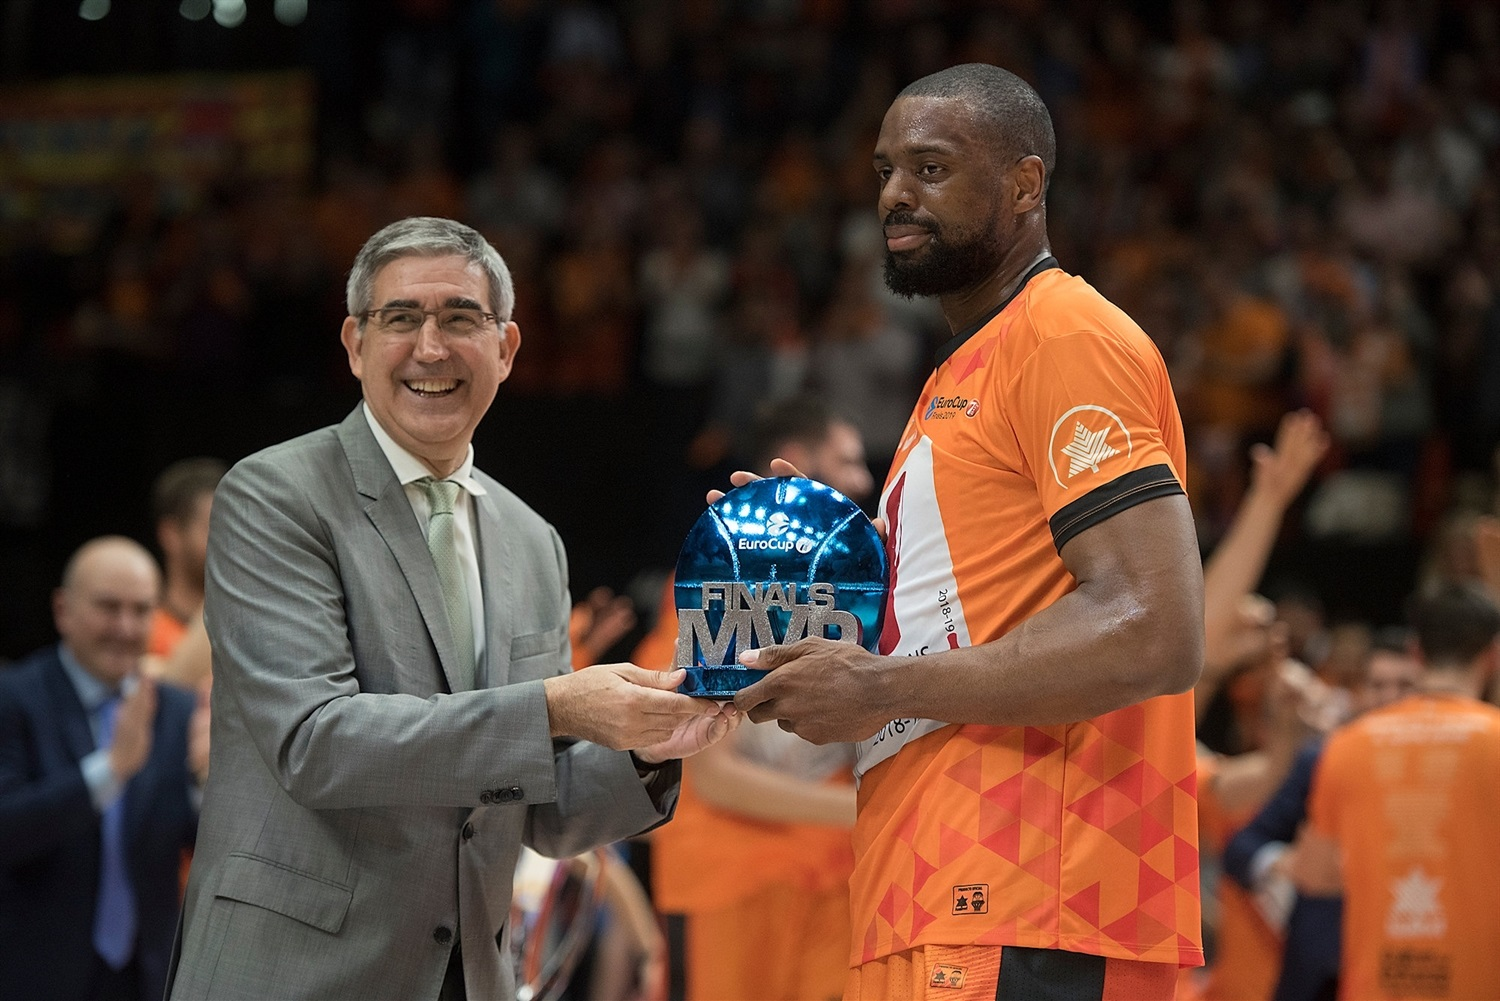 Jordi Bertomeu and Will Thomas, Finals MVP - Valencia Basket - EuroCup Finals Game 3 - EC18